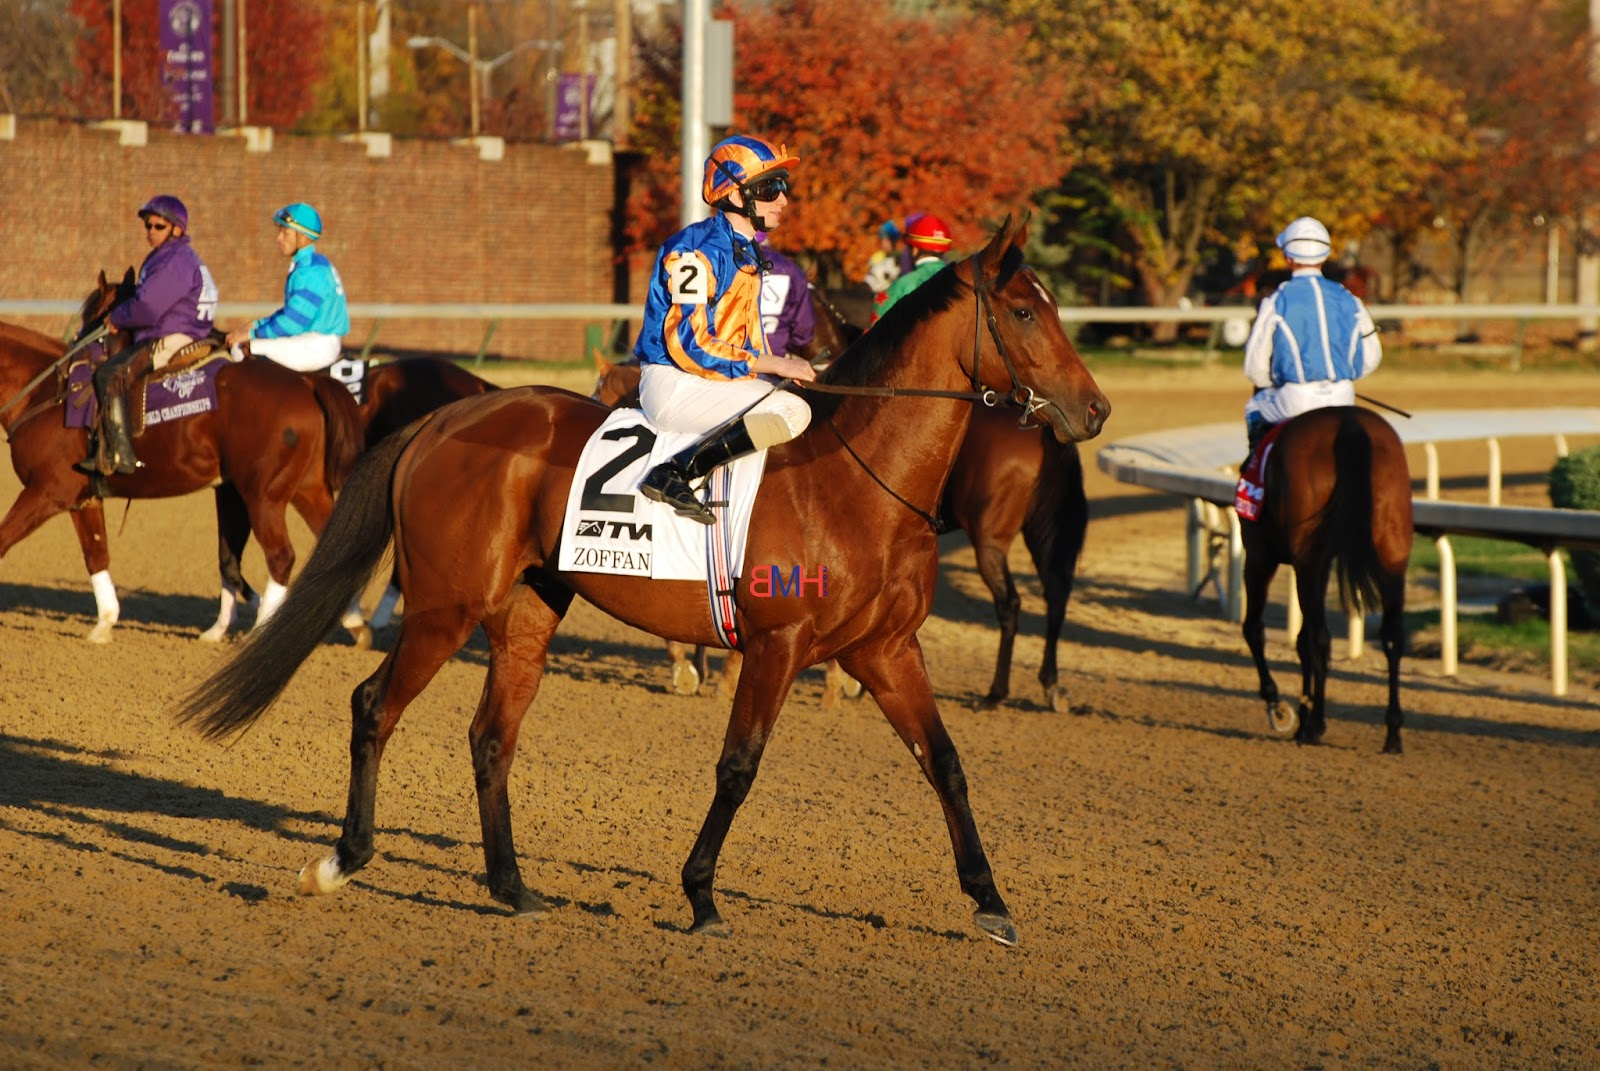 Image result for Zoffany horse